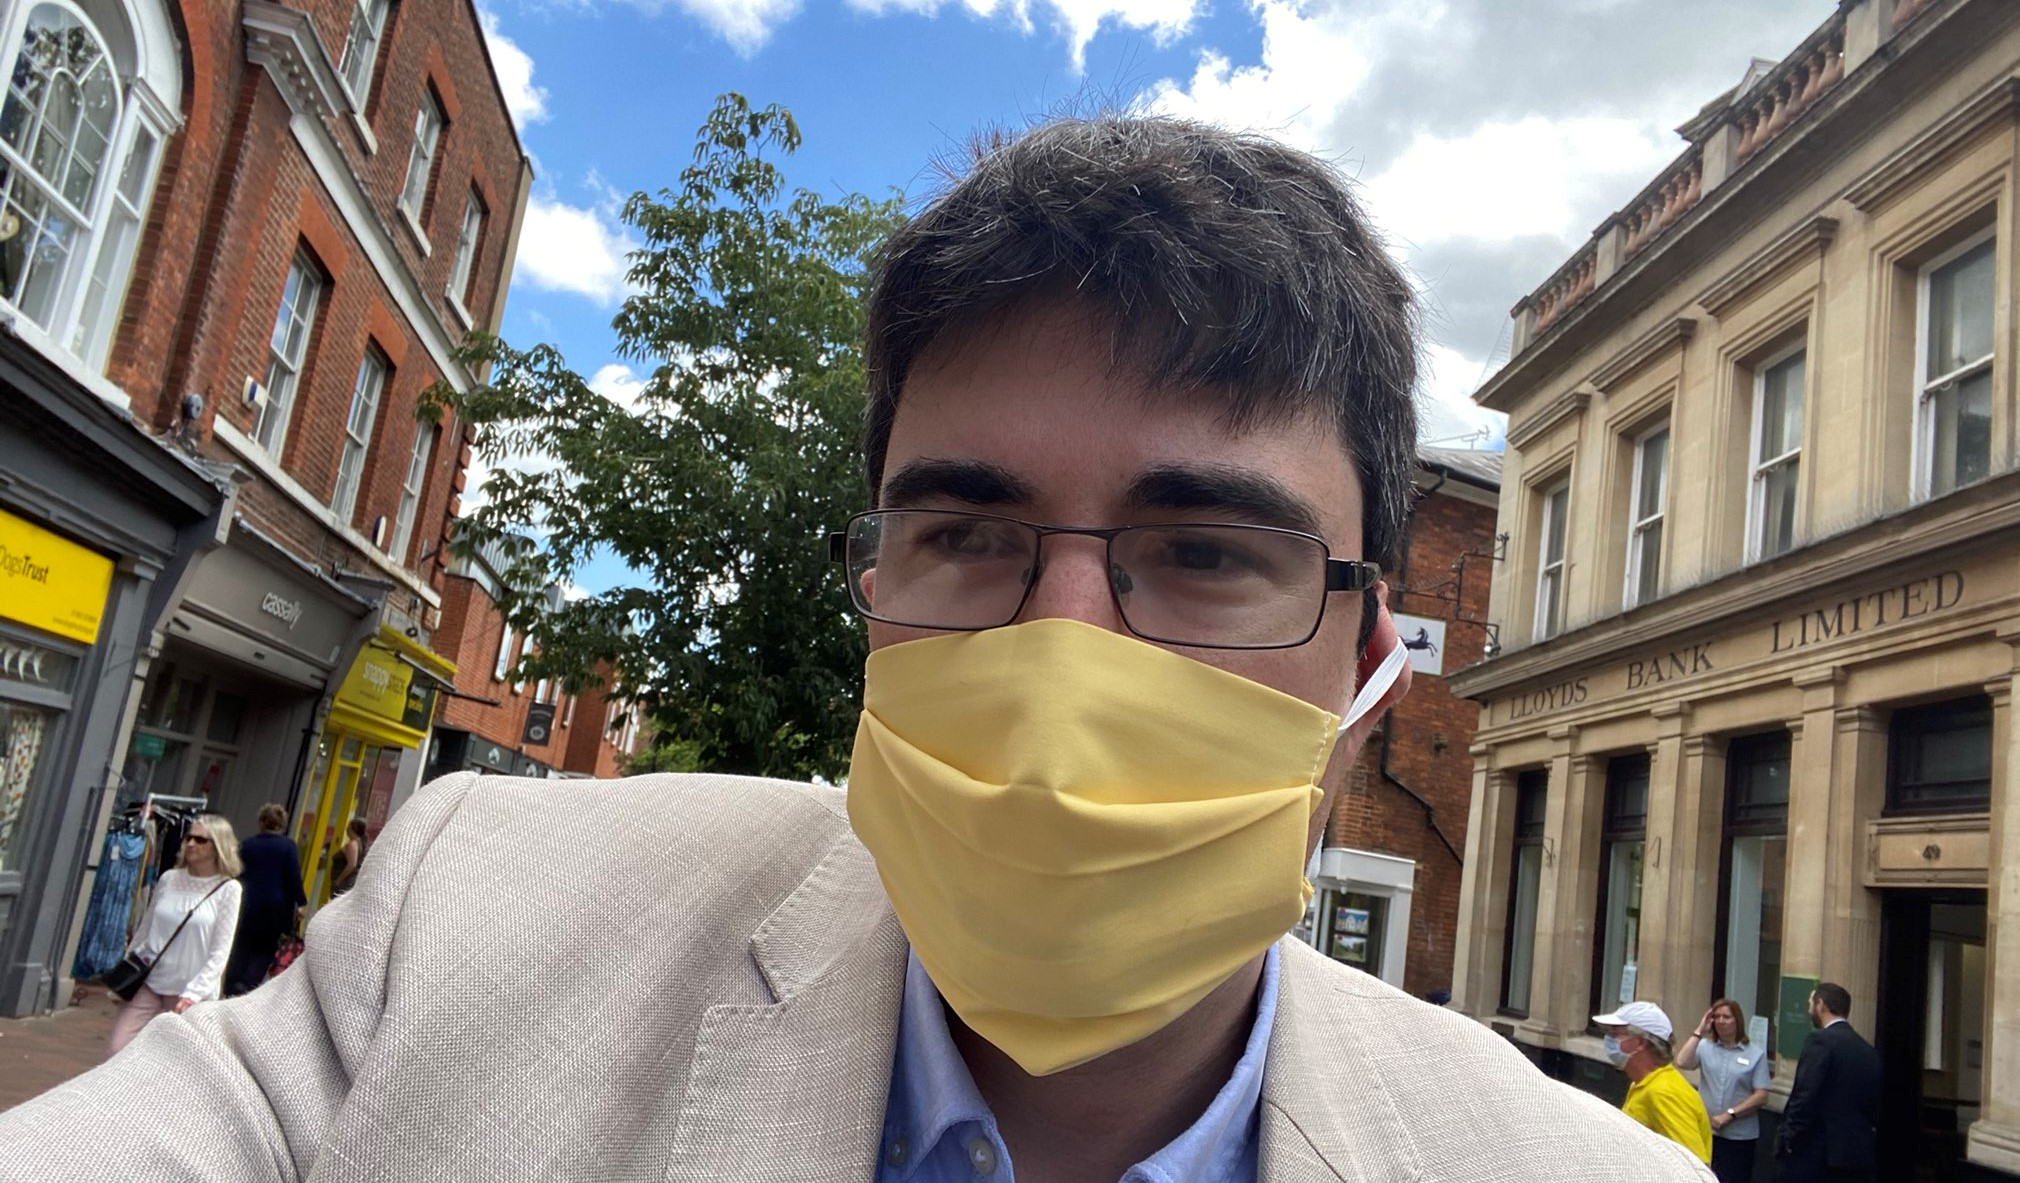 Fighting the pandemic locally